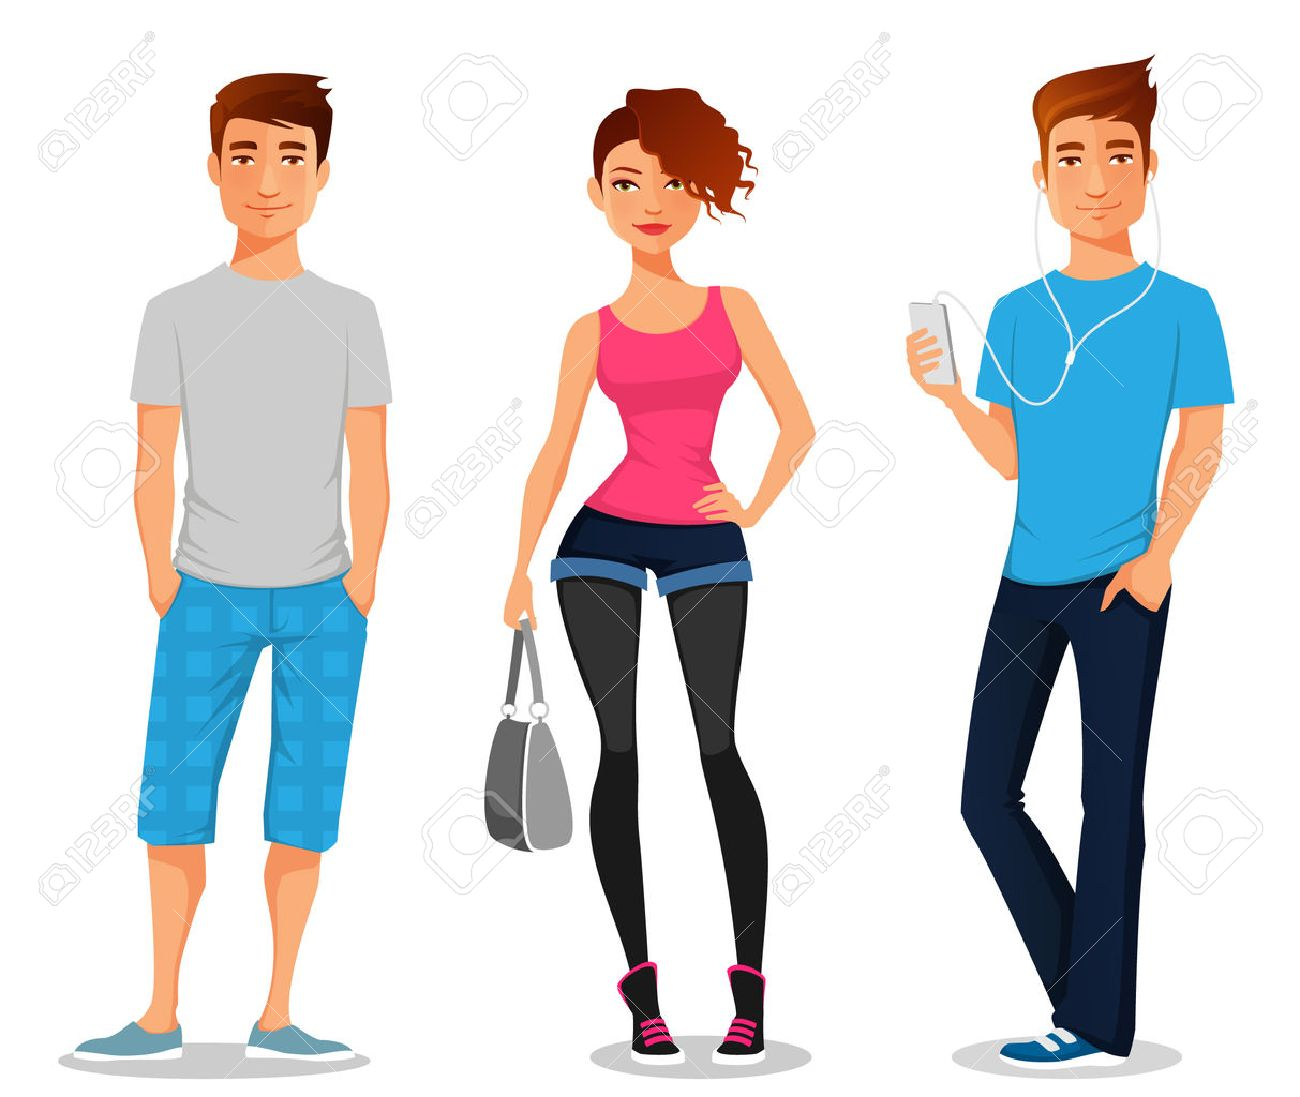 cartoon illustration of young people - 42150078